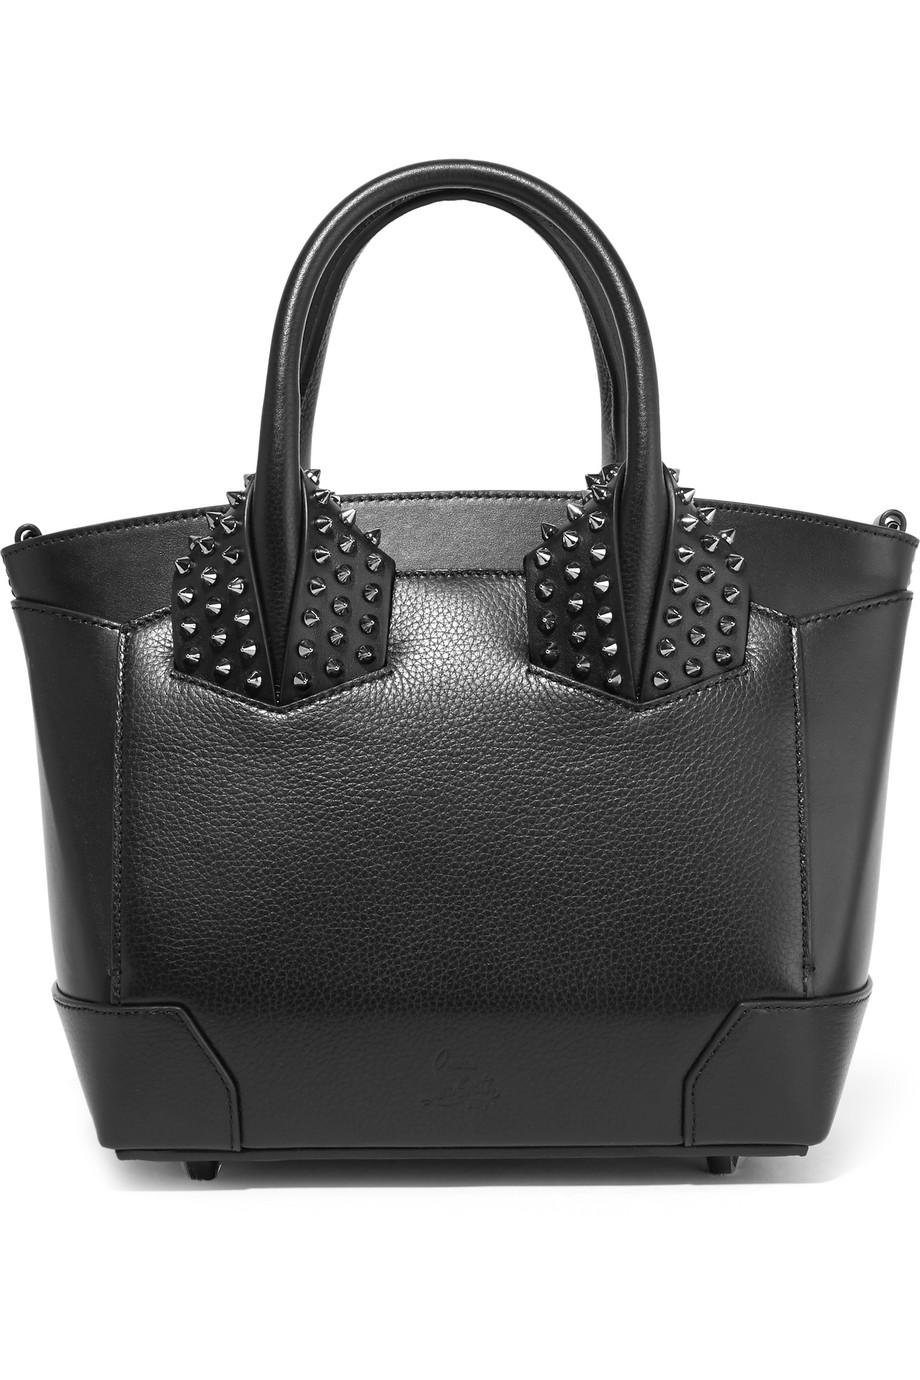 Christian Louboutin Eloise Small Spiked Textured-Leather Tote, Black, Women's